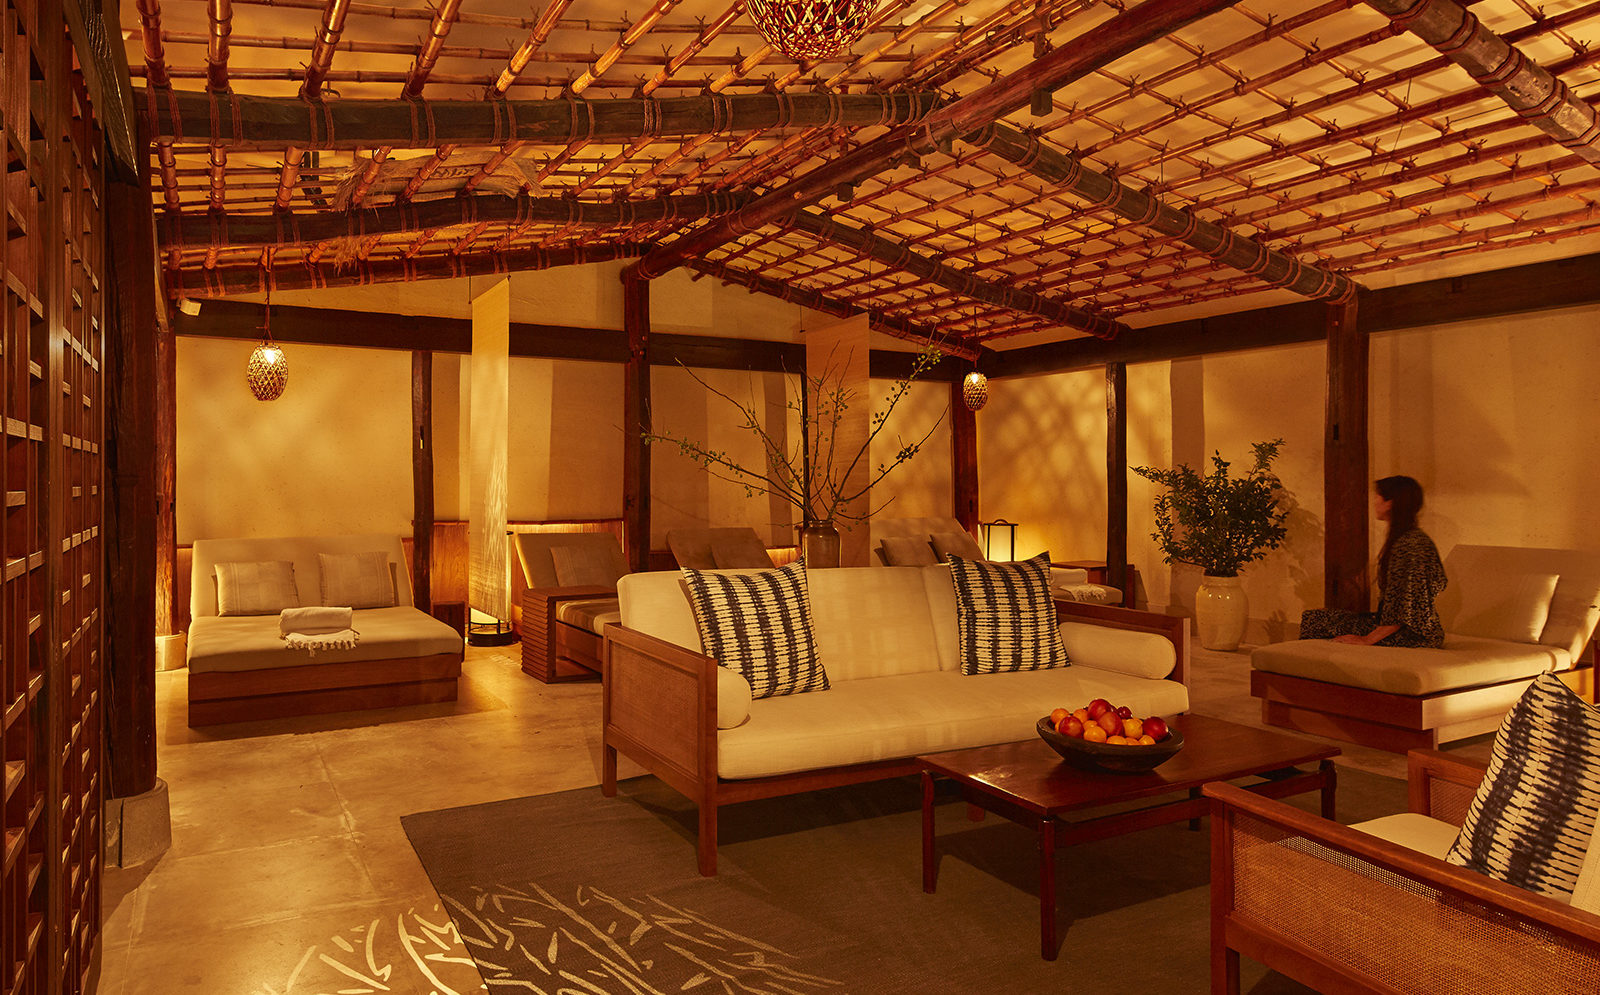 Shibui spa relaxation area at the Greenwich Hotel